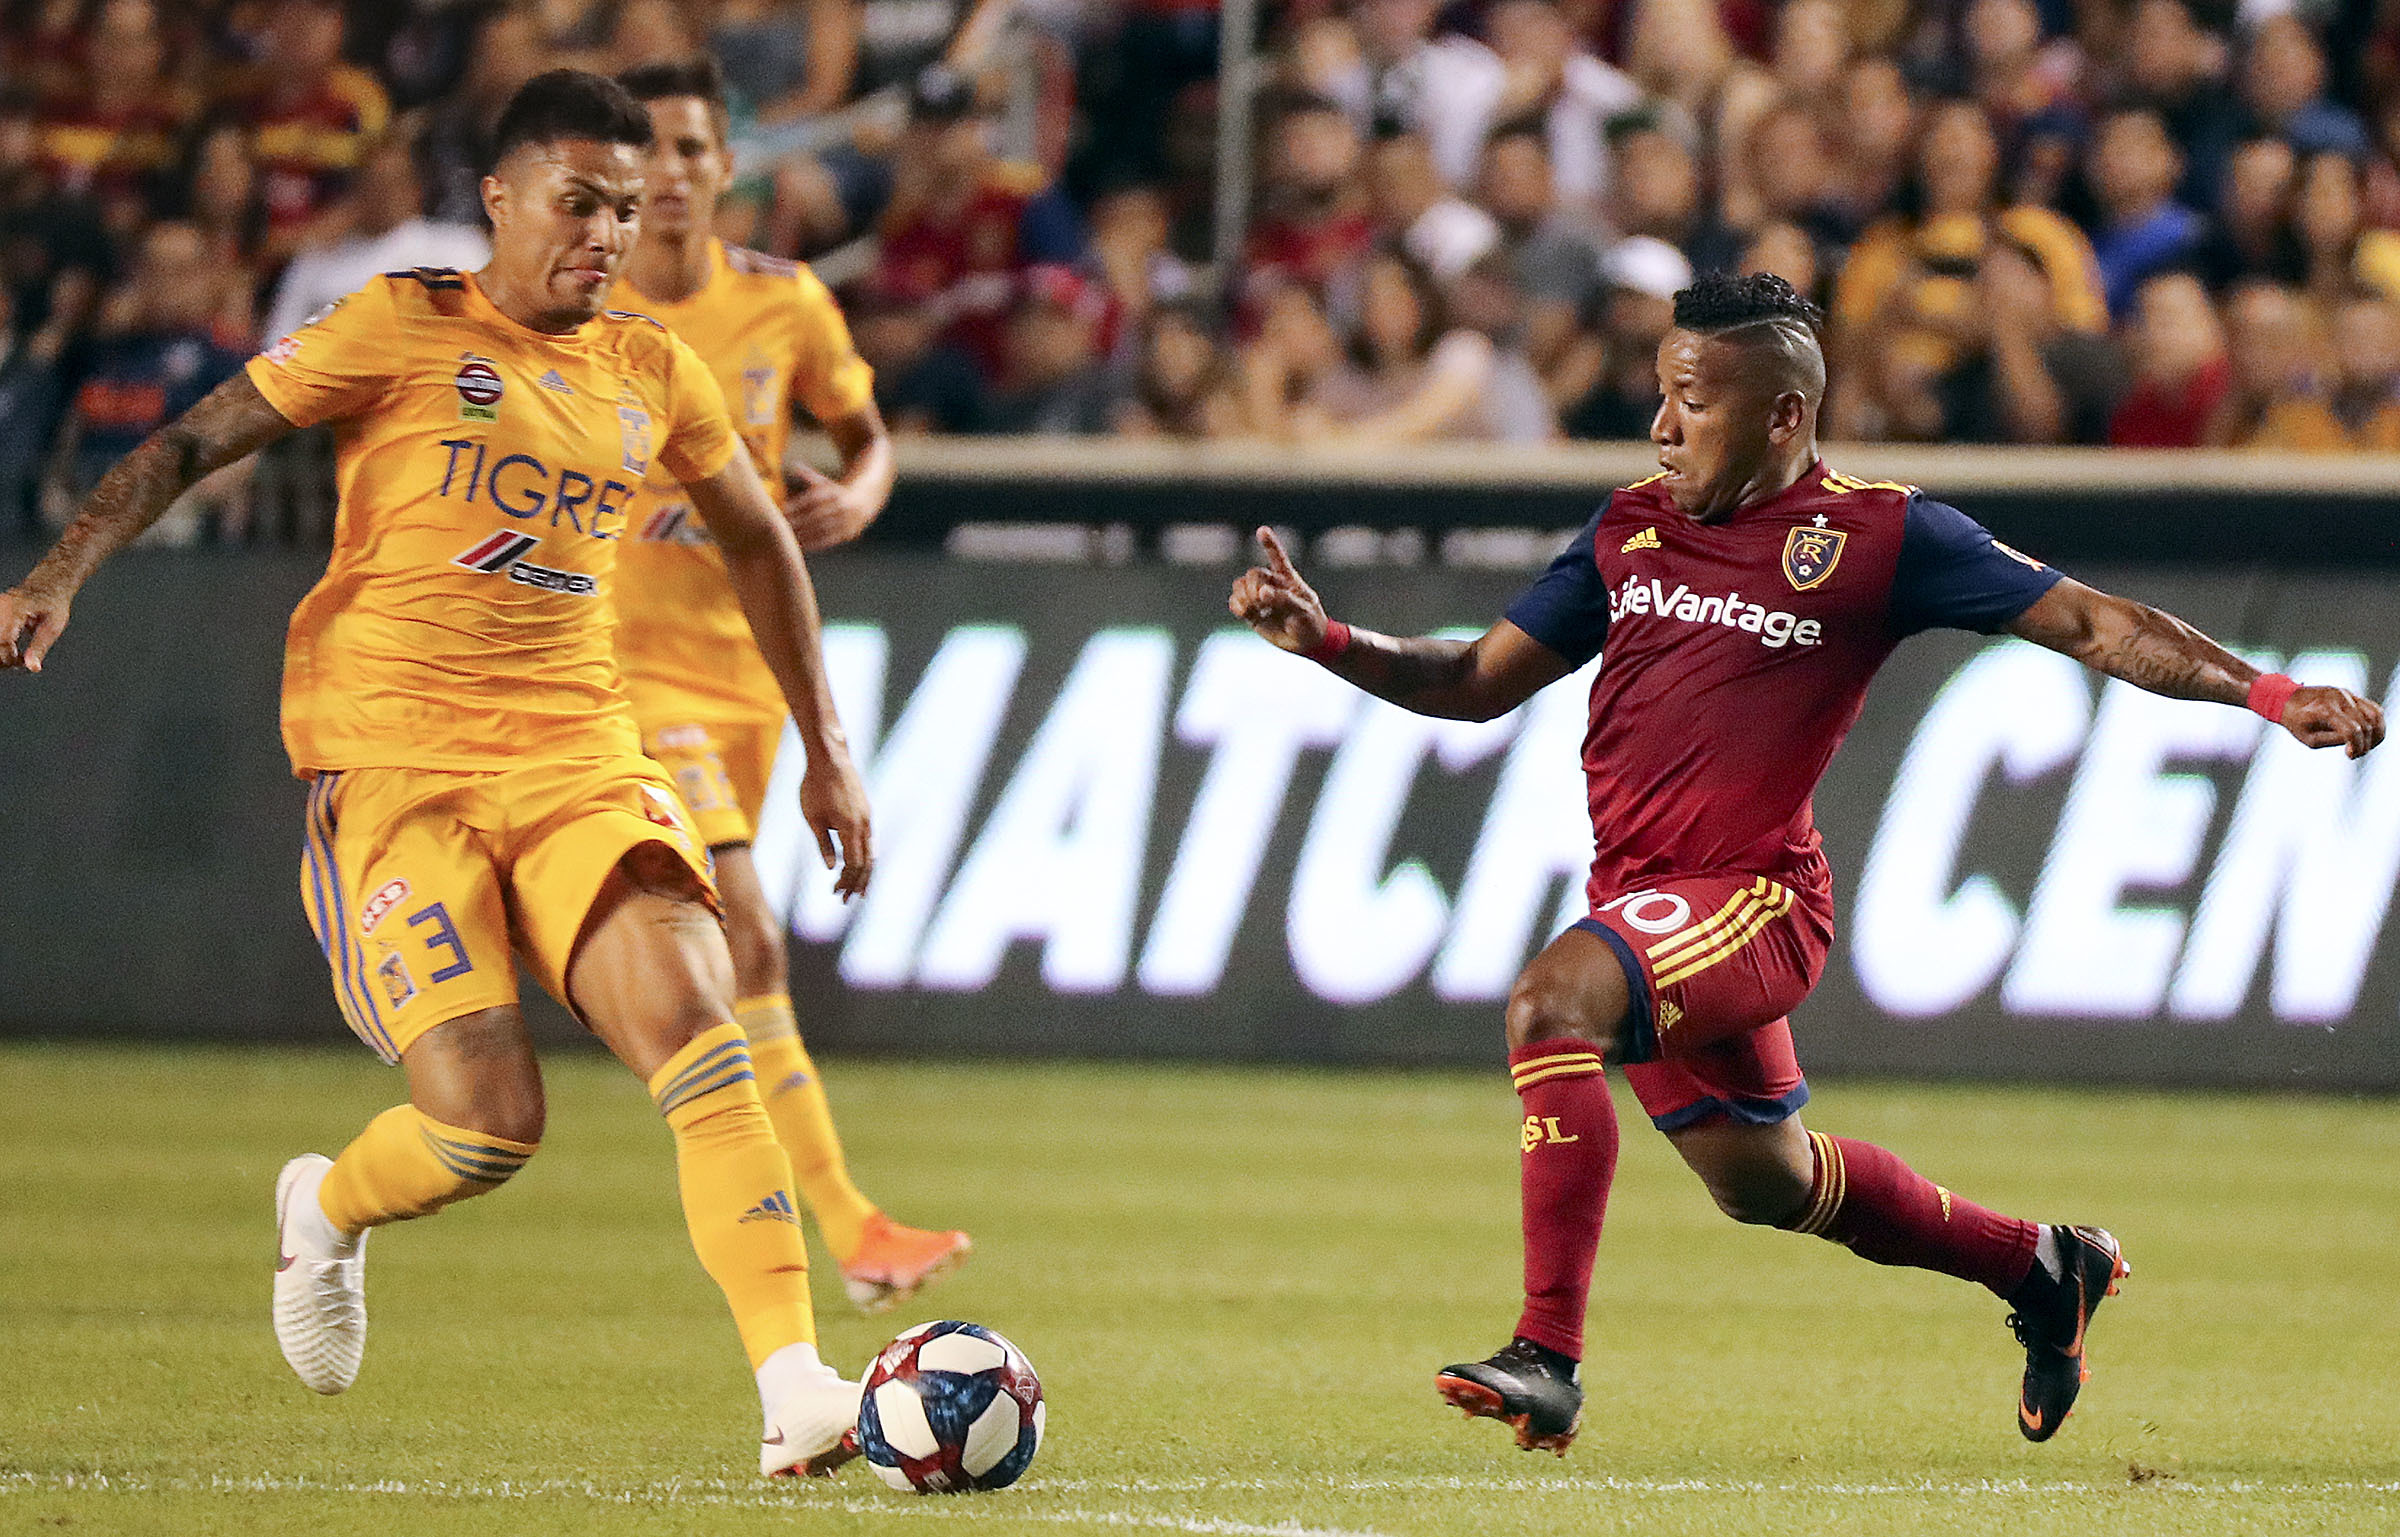 UANL Tigres defender Juninho (3) and Real Salt Lake forward Joao Plata (10) fight for the ball during a Leagues Cup soccer match at Rio Tinto Stadium in Sandy on Wednesday, July 24, 2019. Real Salt Lake lost 0-1.